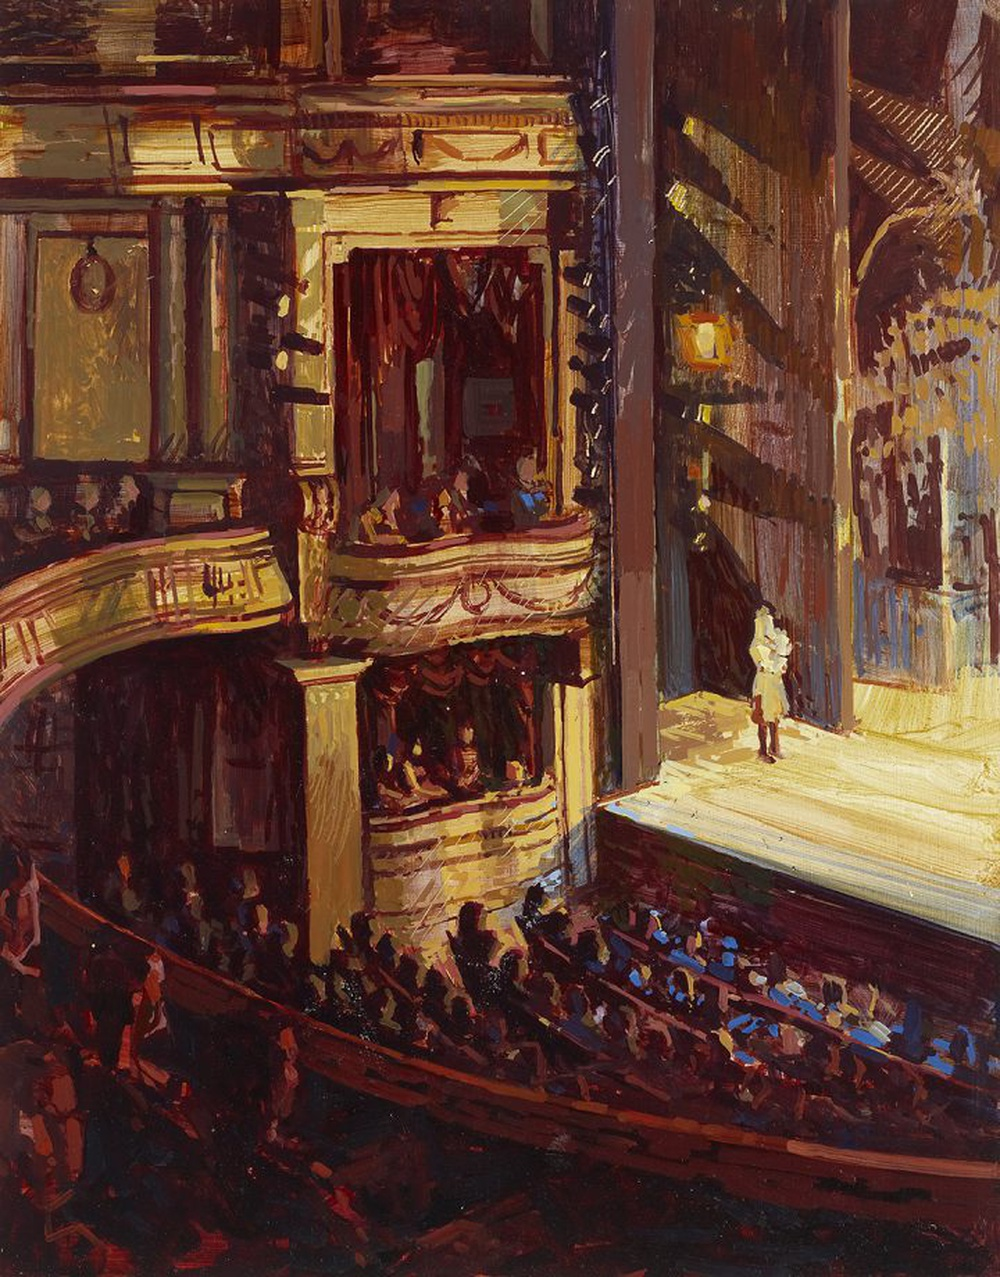 The real thrill of theatre is the thrill of knowing that at any moment something might go wrong